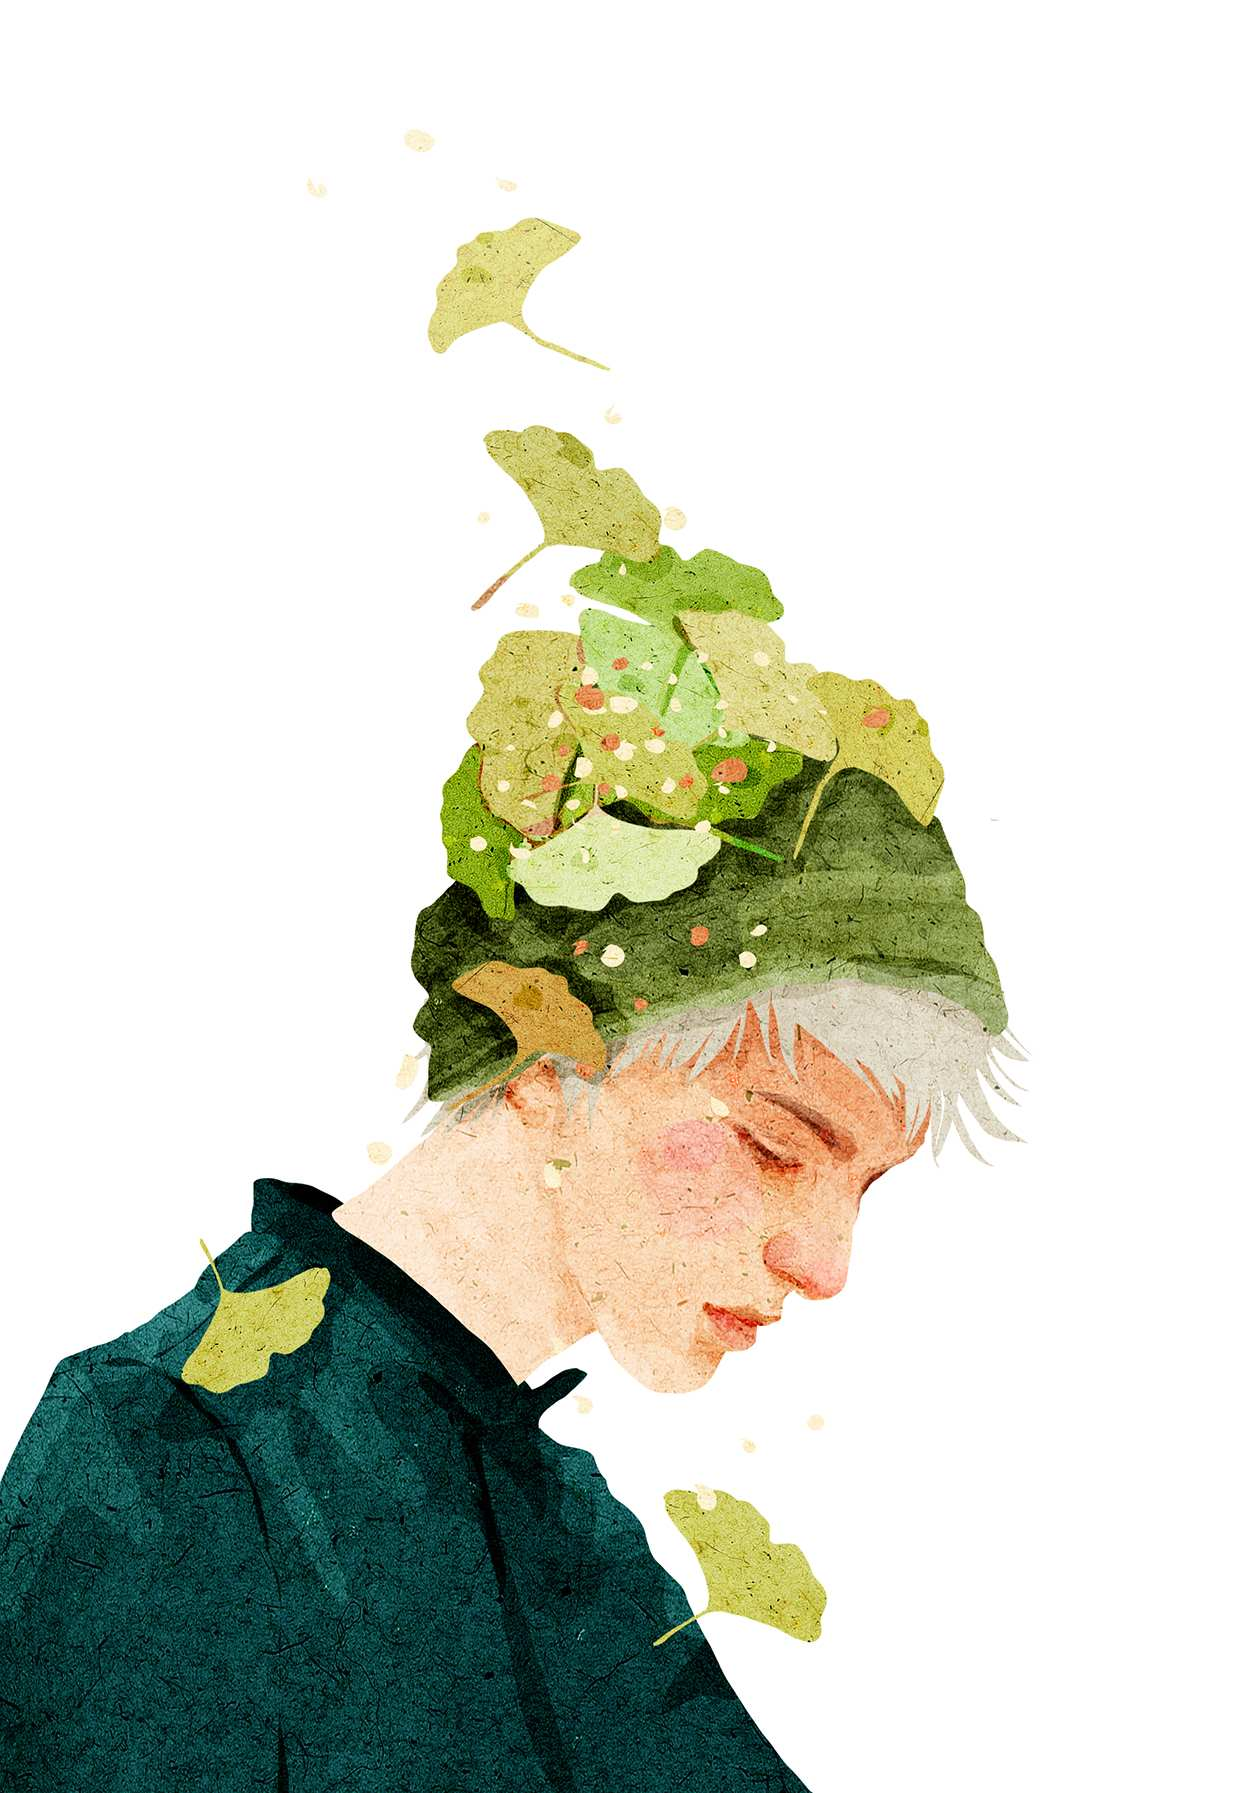 Digital Illustrations By Xuan Loc Xuan